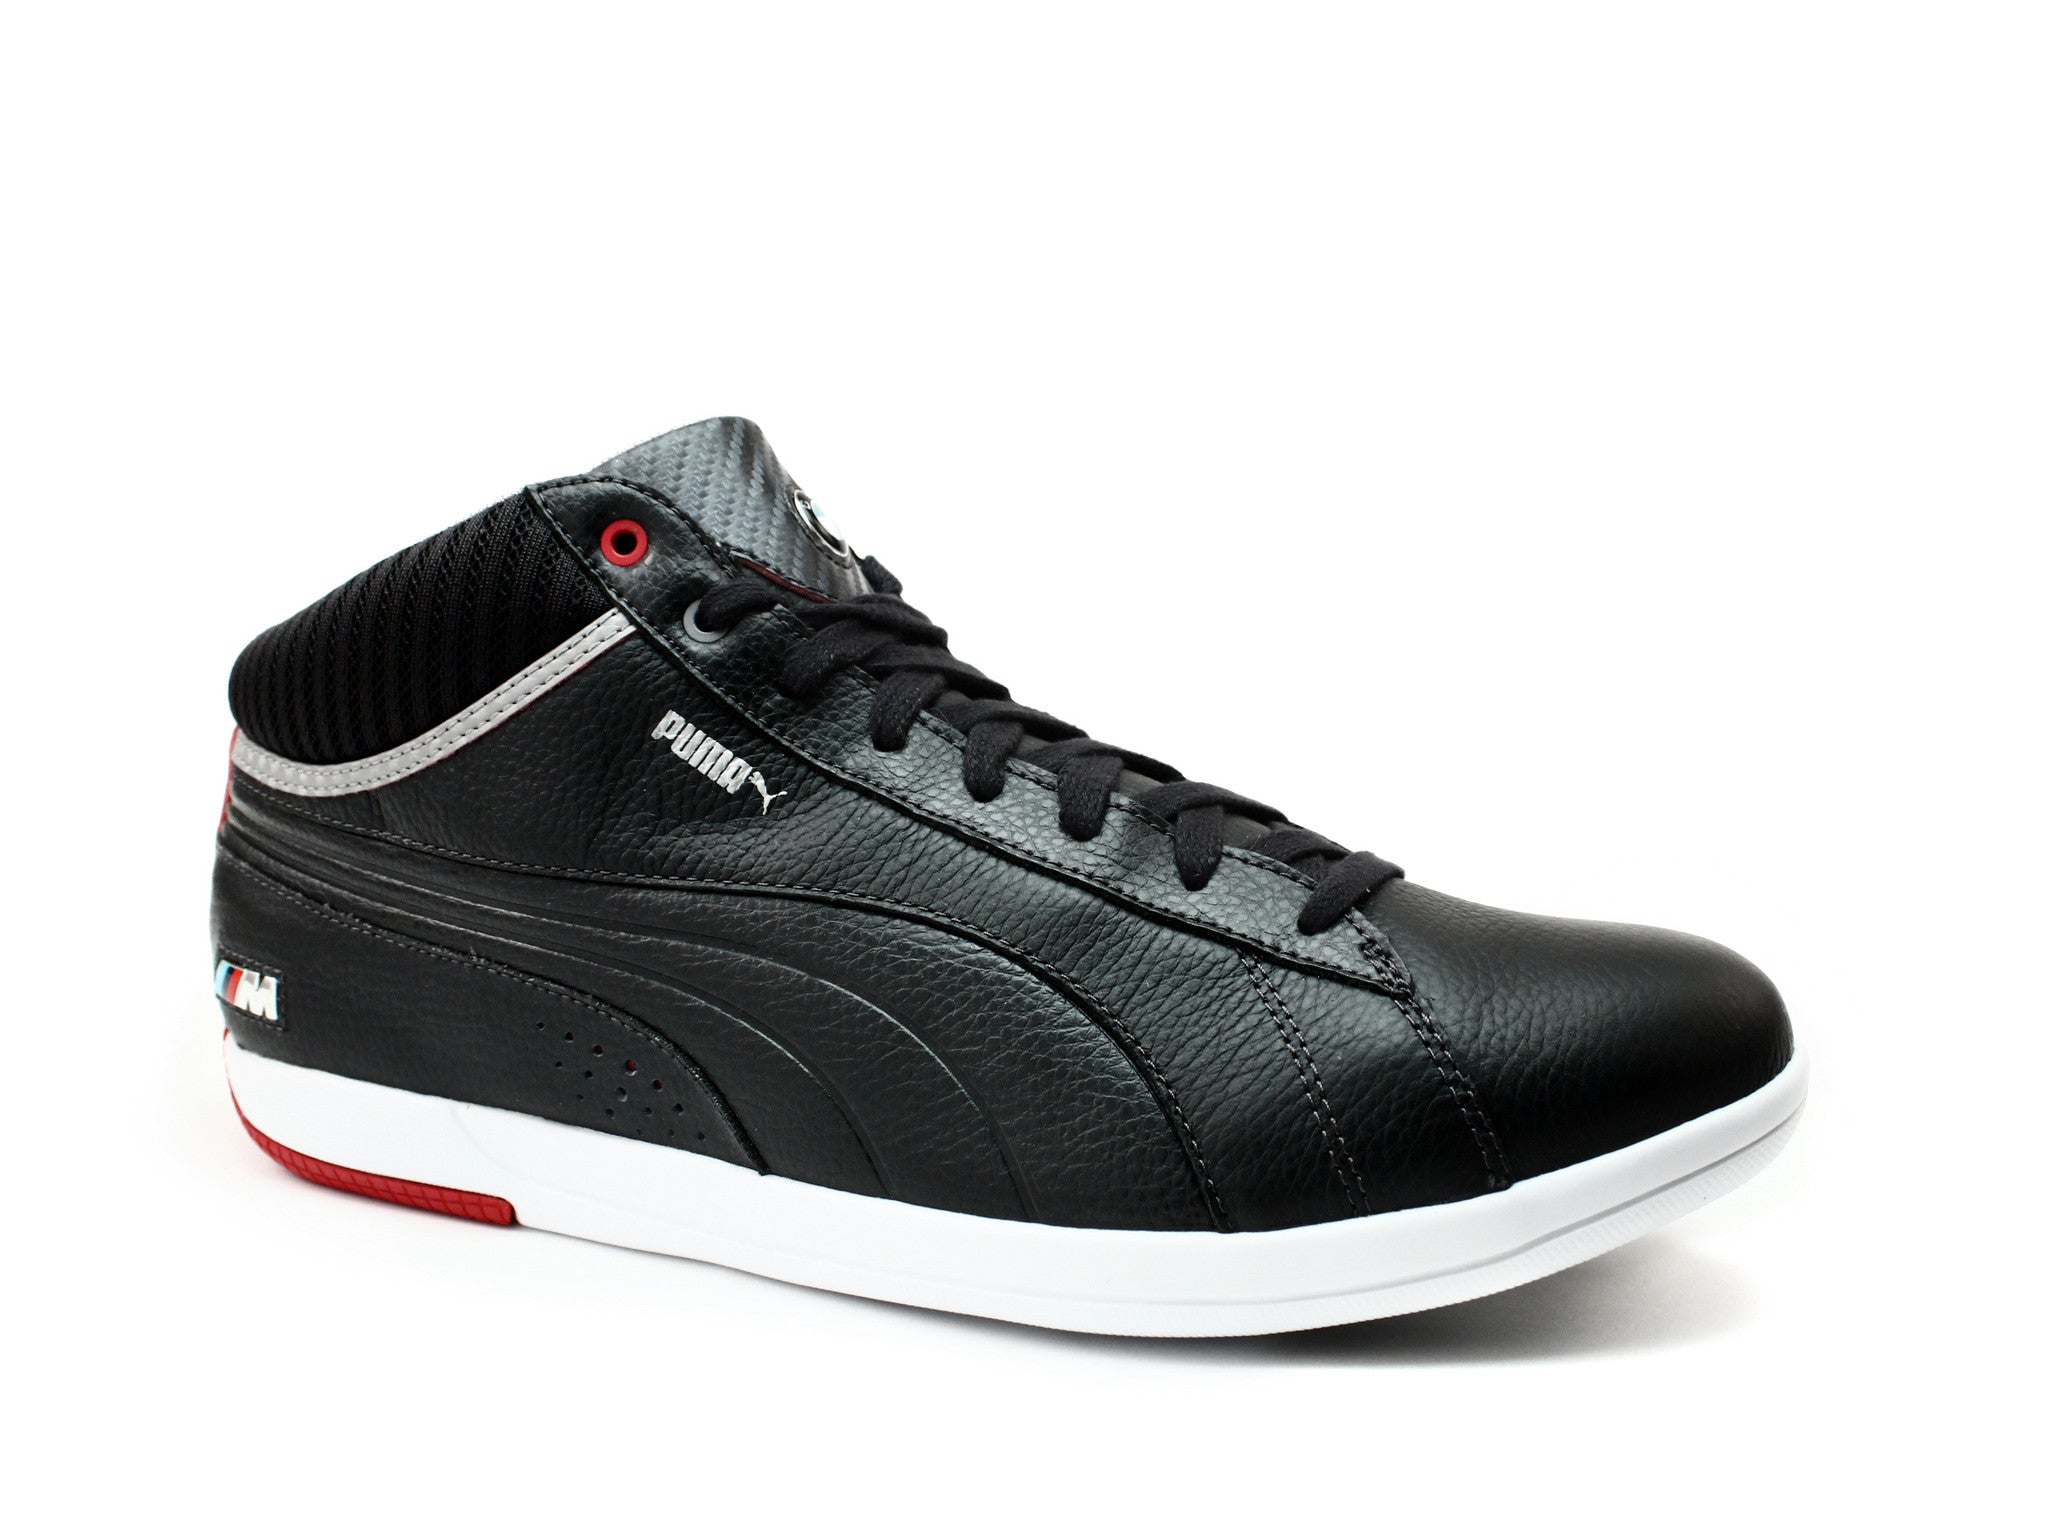 Puma BMW M-Series Men s Shoes Casual Sneakers – ShoeVariety.com 99671829d